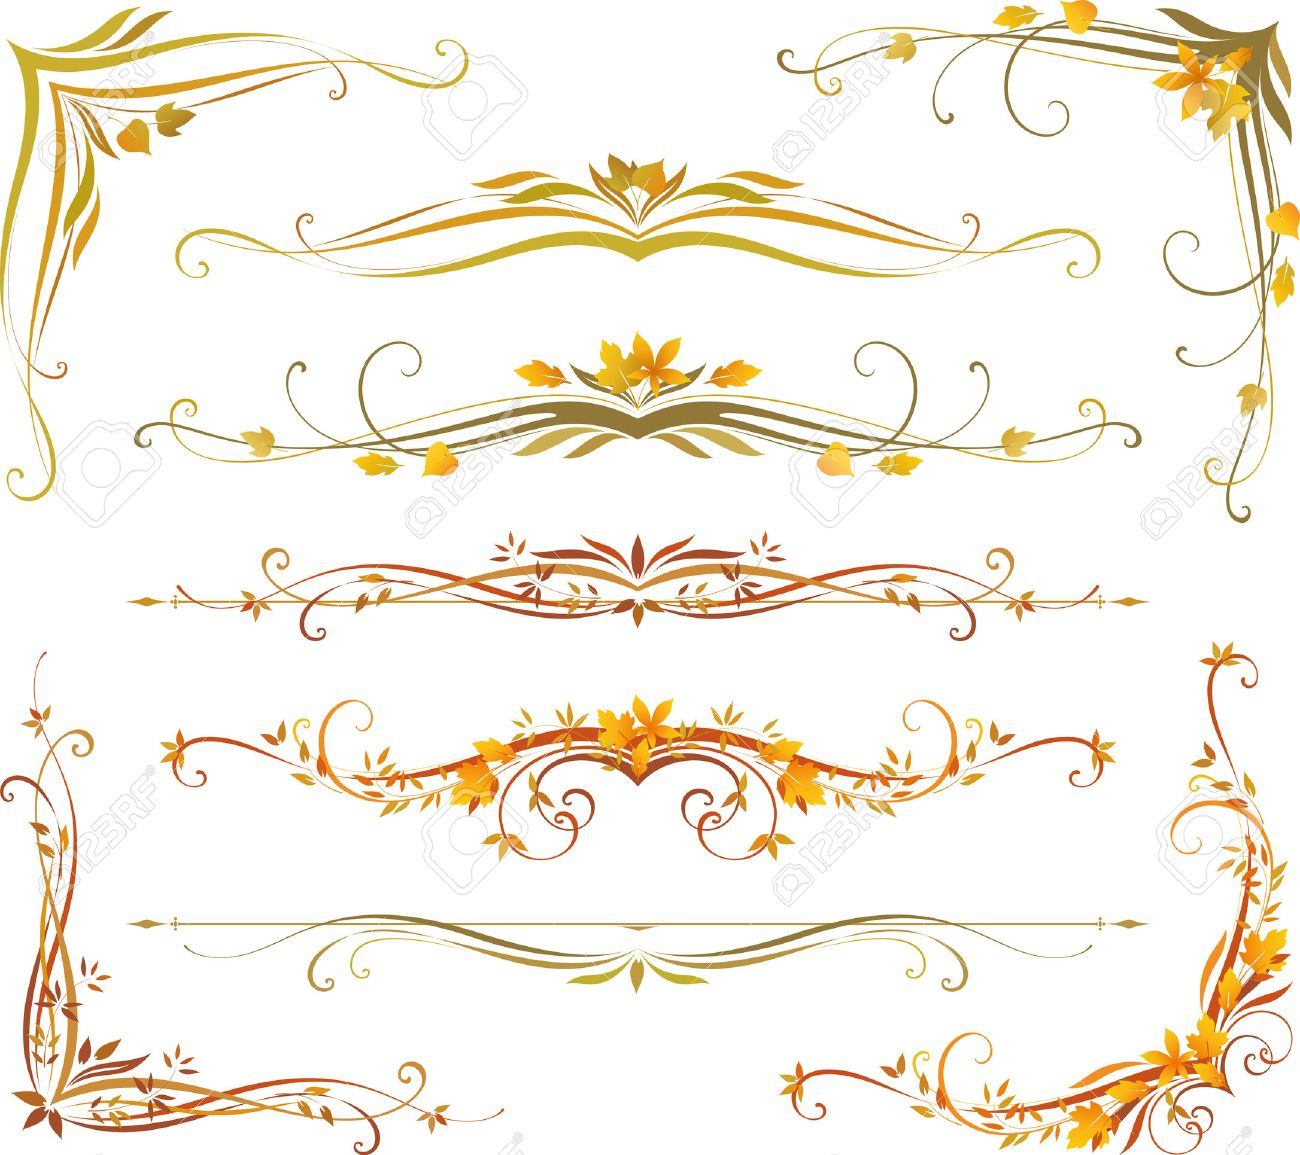 vectorized scroll design use for wedding invitations royal